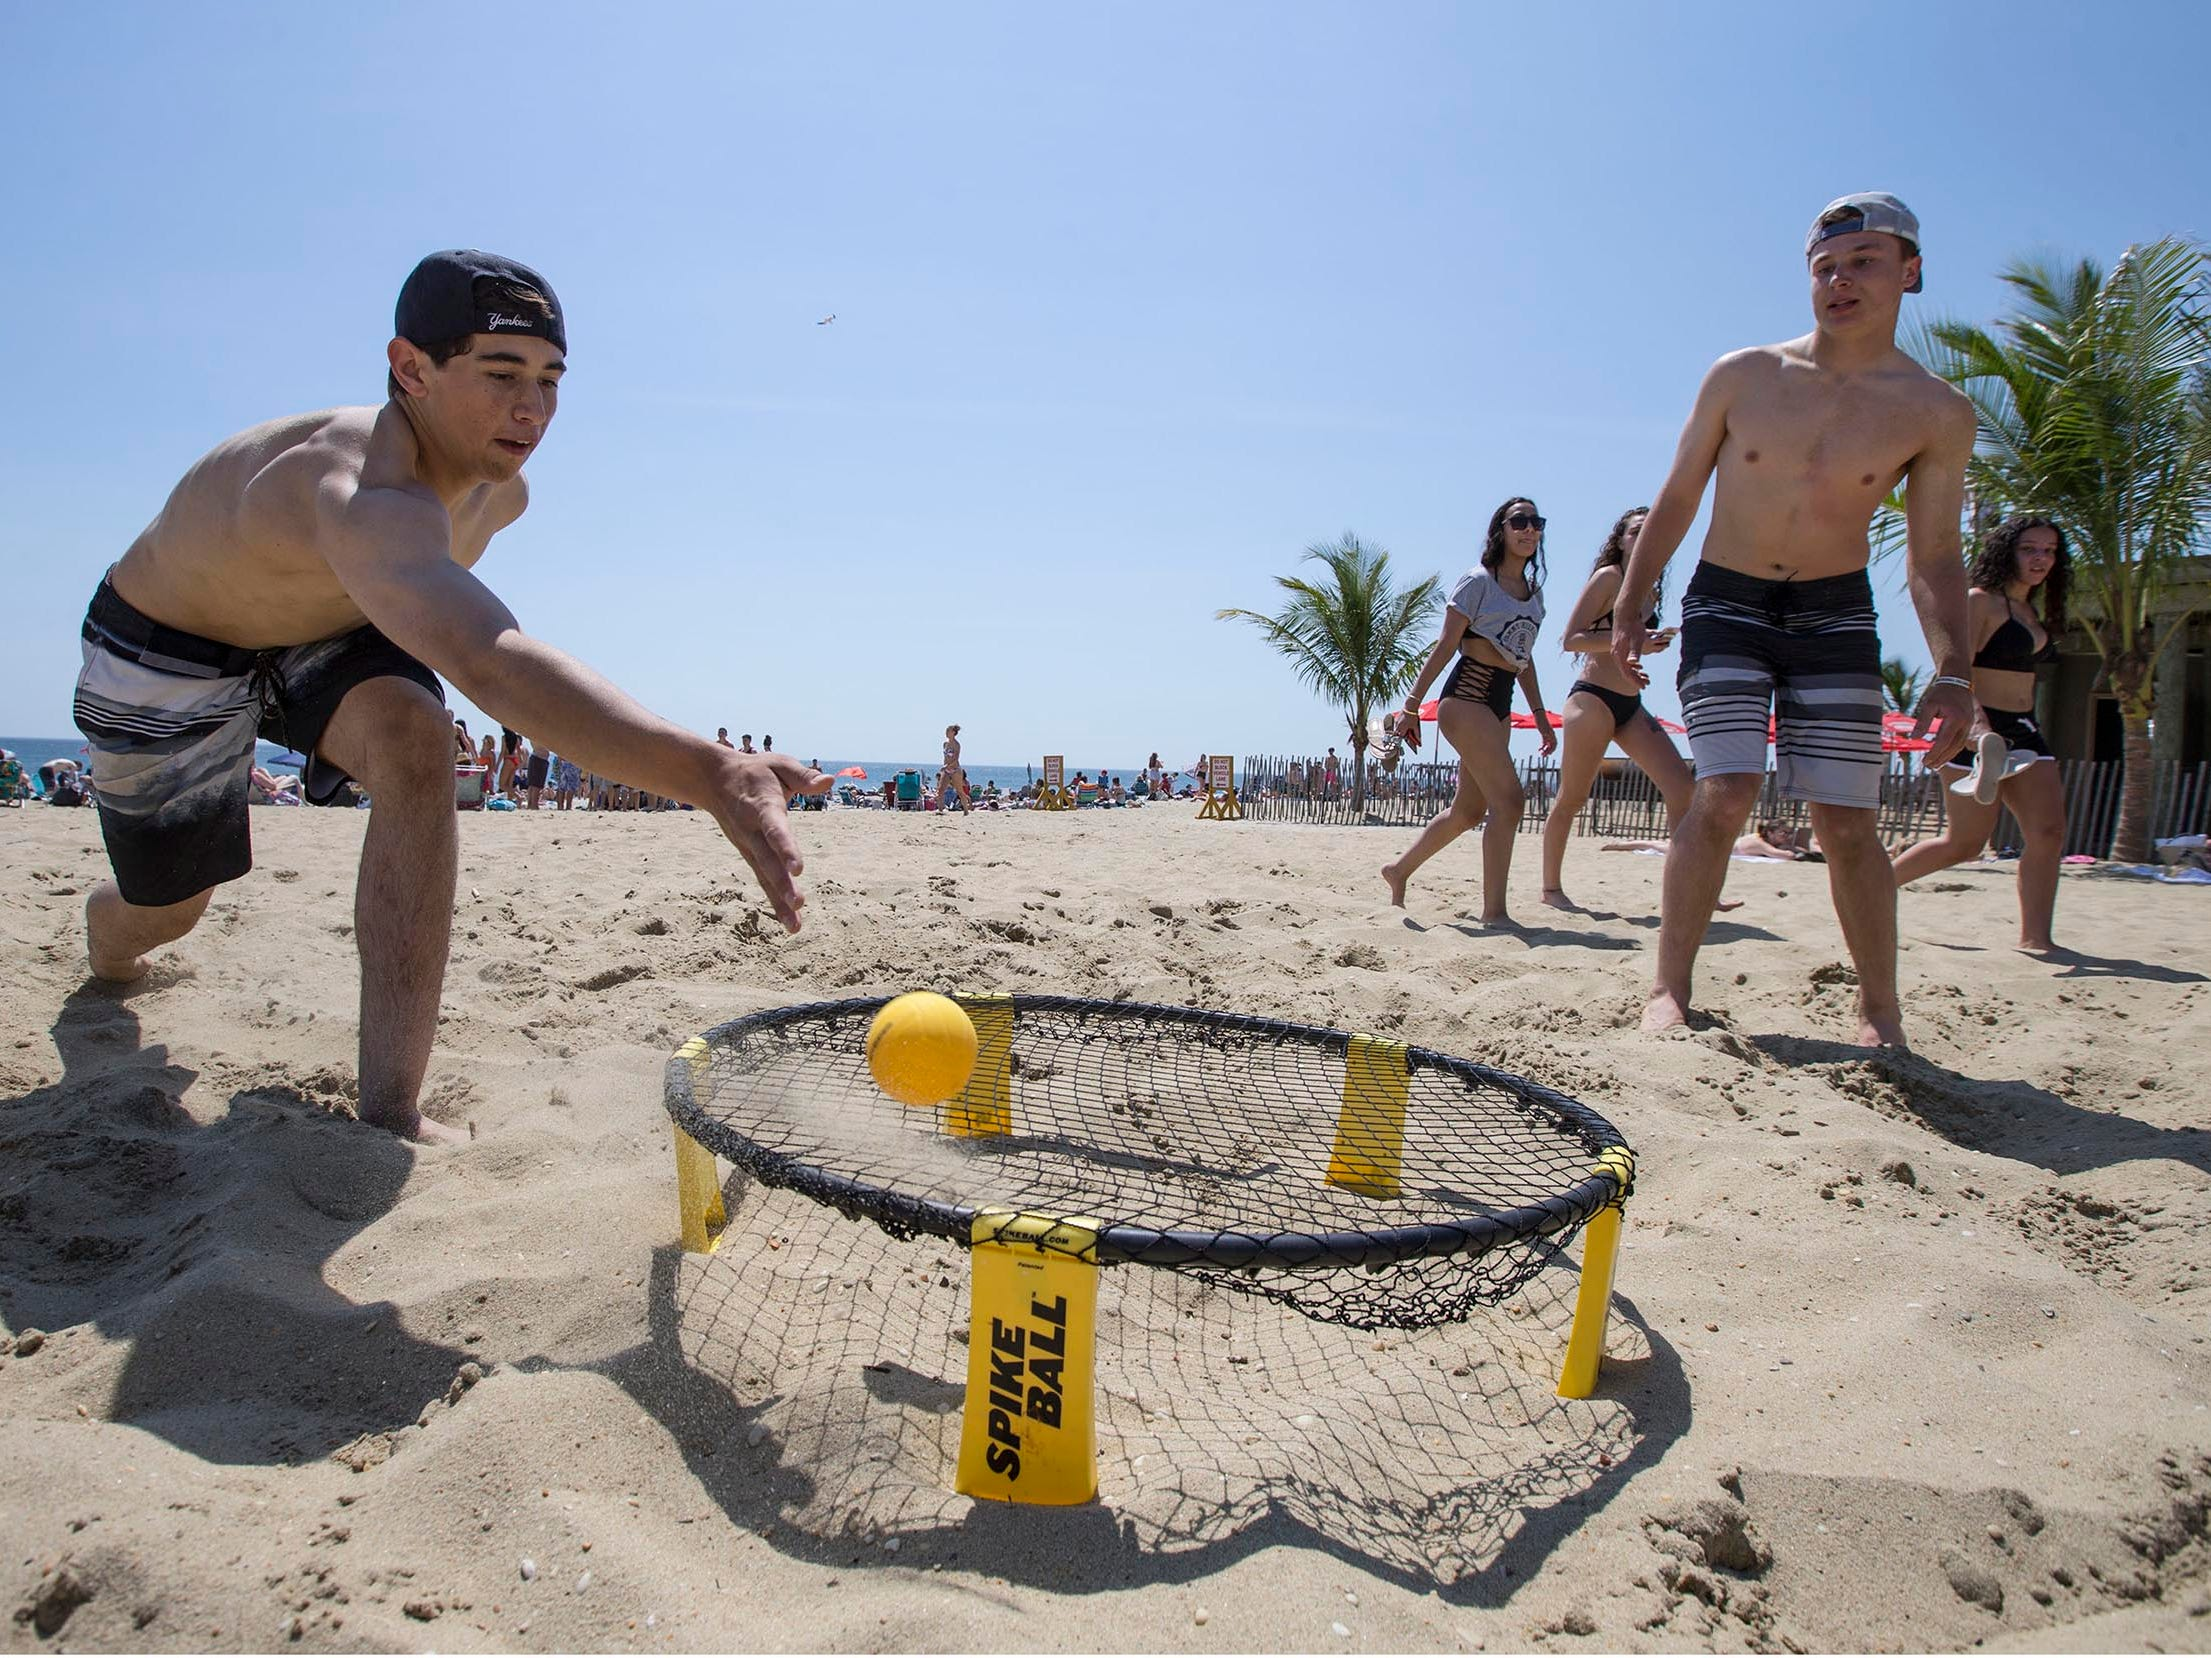 Tom Faggioni and Garrett Smith, both of Old Bridge, play spike ball. People flock to the beach in Long Branch to enjoy the beautiful weather as Memorial Day weekend gets underway. Long Branch, NJ on Friday, May 25, 2018